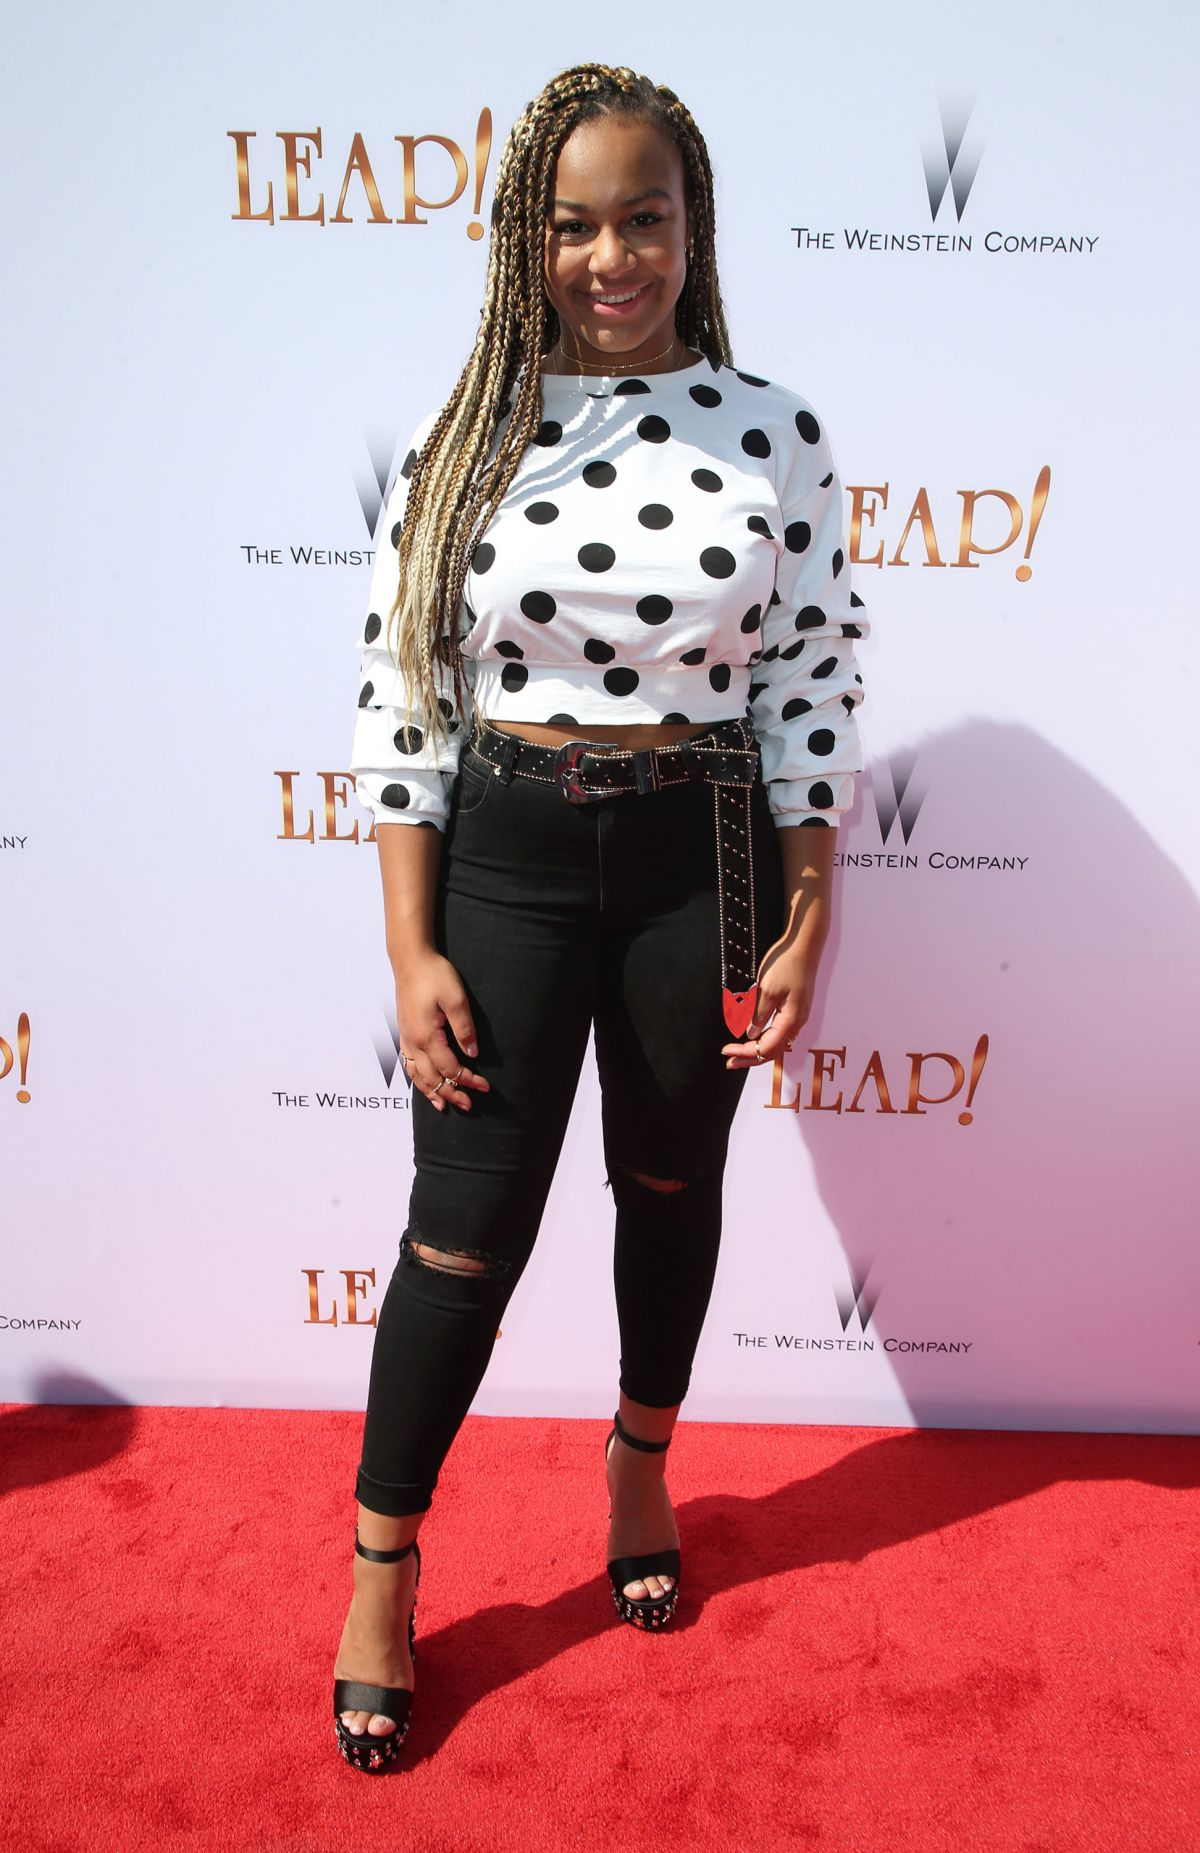 NIA FRAZIER at Leap! Premiere in Los Angeles 08/19/2017